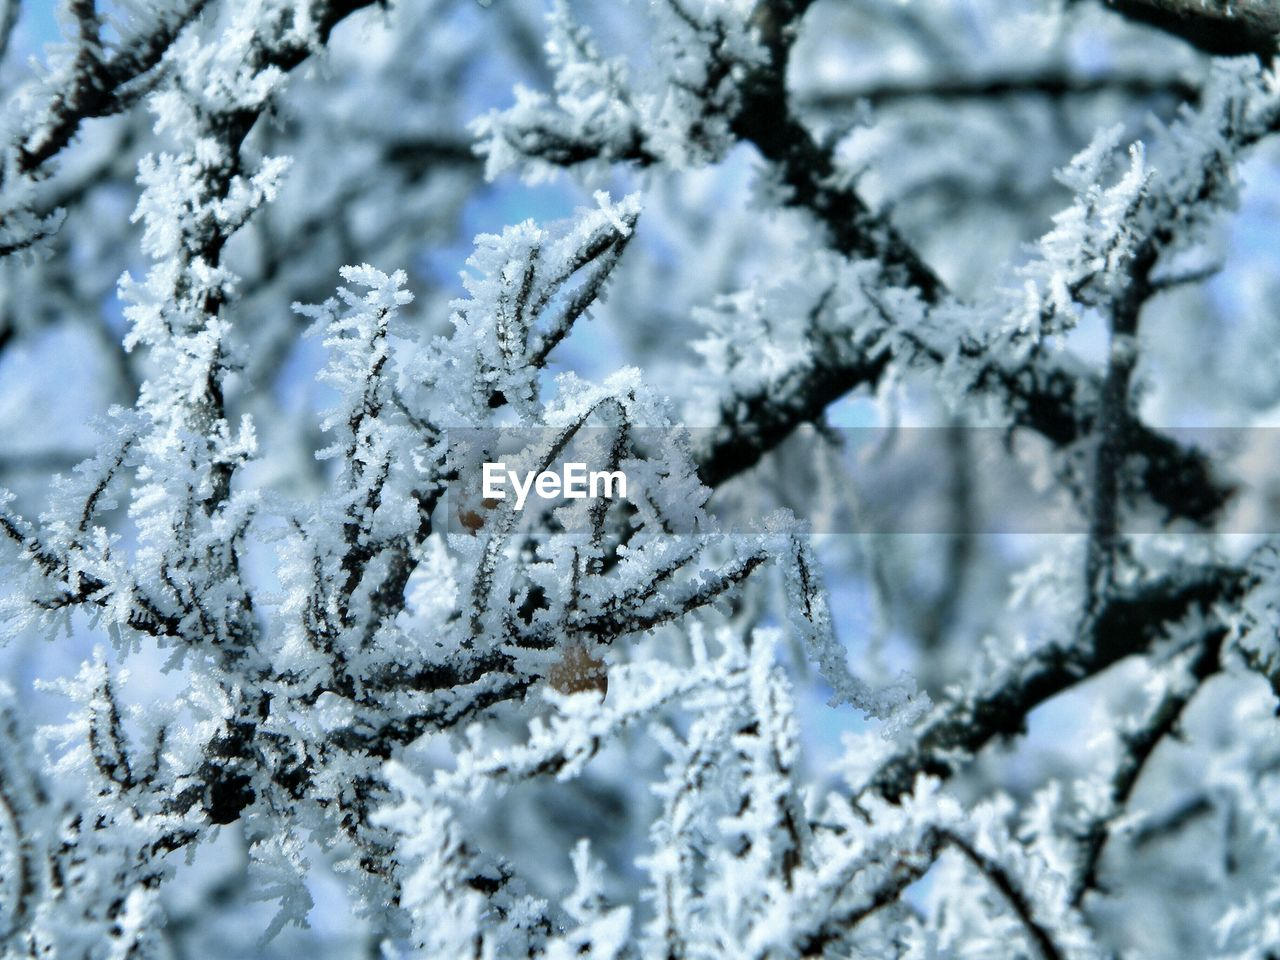 cold temperature, winter, snow, frozen, ice, no people, close-up, beauty in nature, nature, plant, backgrounds, full frame, day, white color, selective focus, tranquility, frost, branch, focus on foreground, outdoors, extreme weather, blizzard, coniferous tree, fir tree